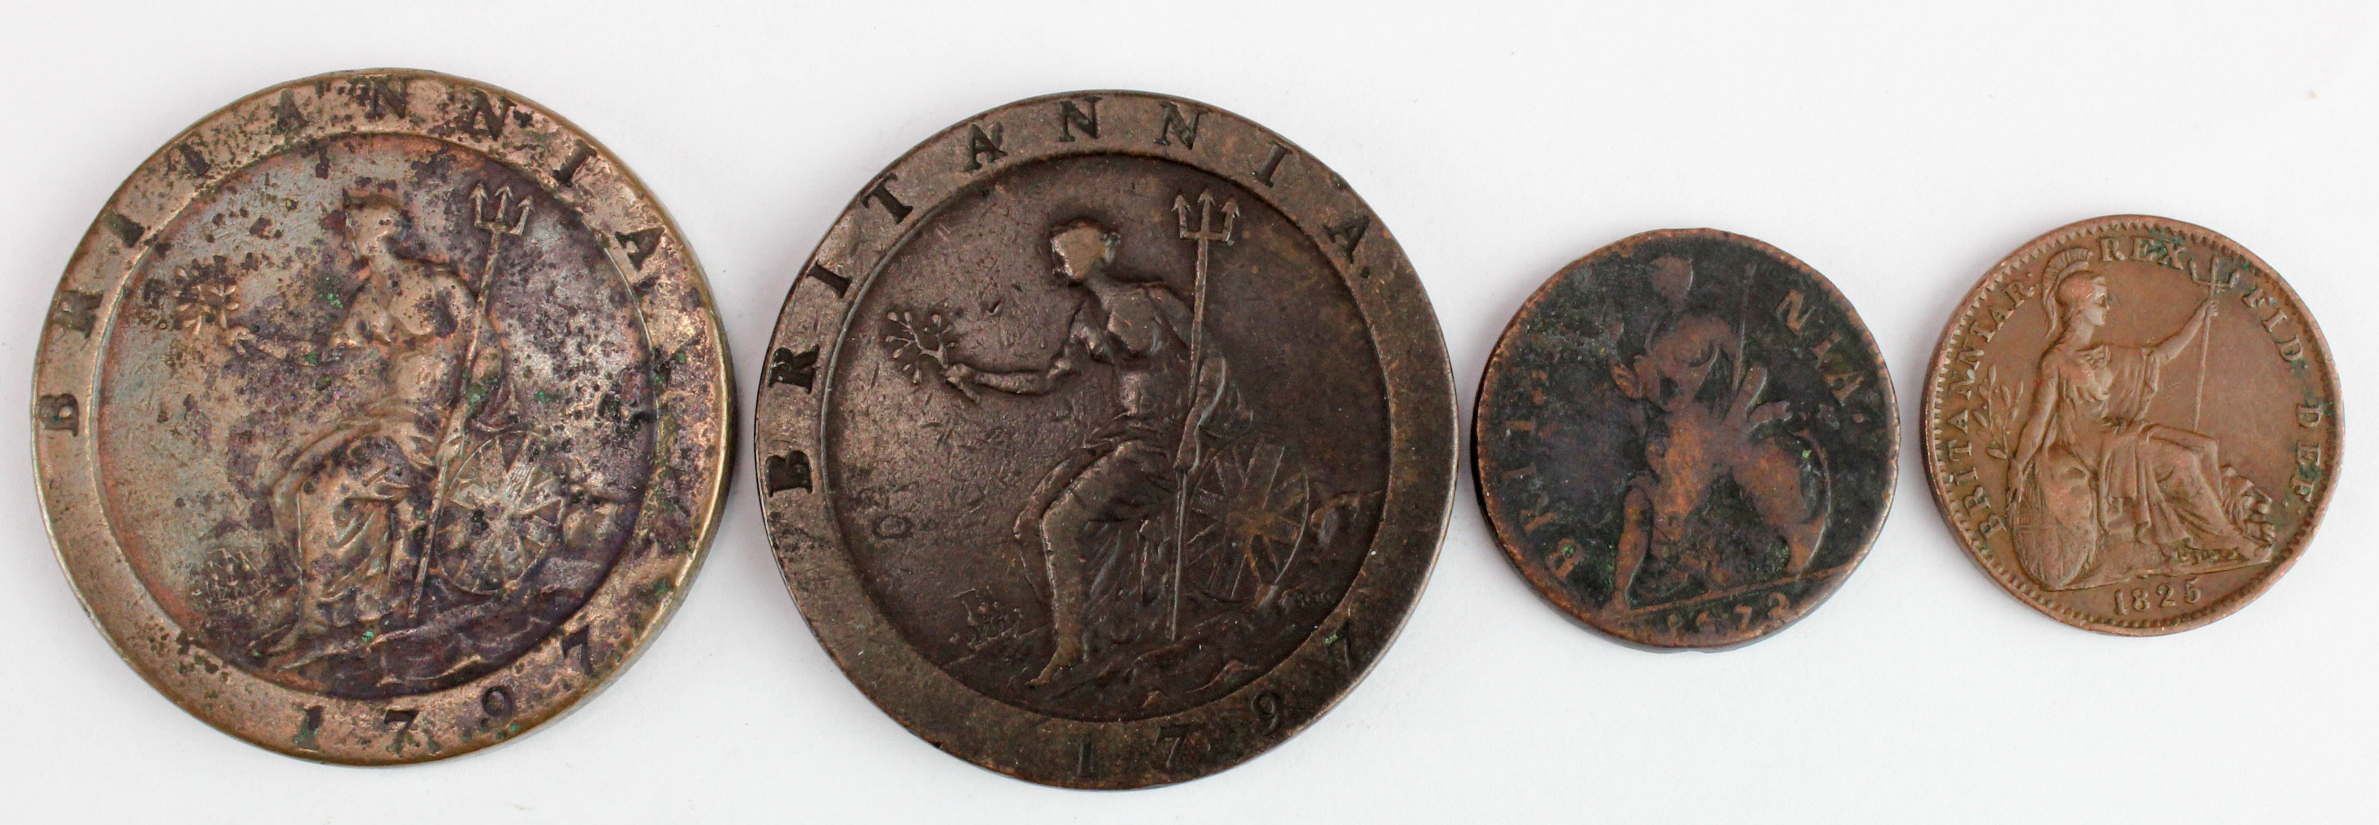 GB Copper (4): Cartwheel Pennies 1797 x2 Fine; Farthings: 1672 VG, and 1825 VF - Image 2 of 2